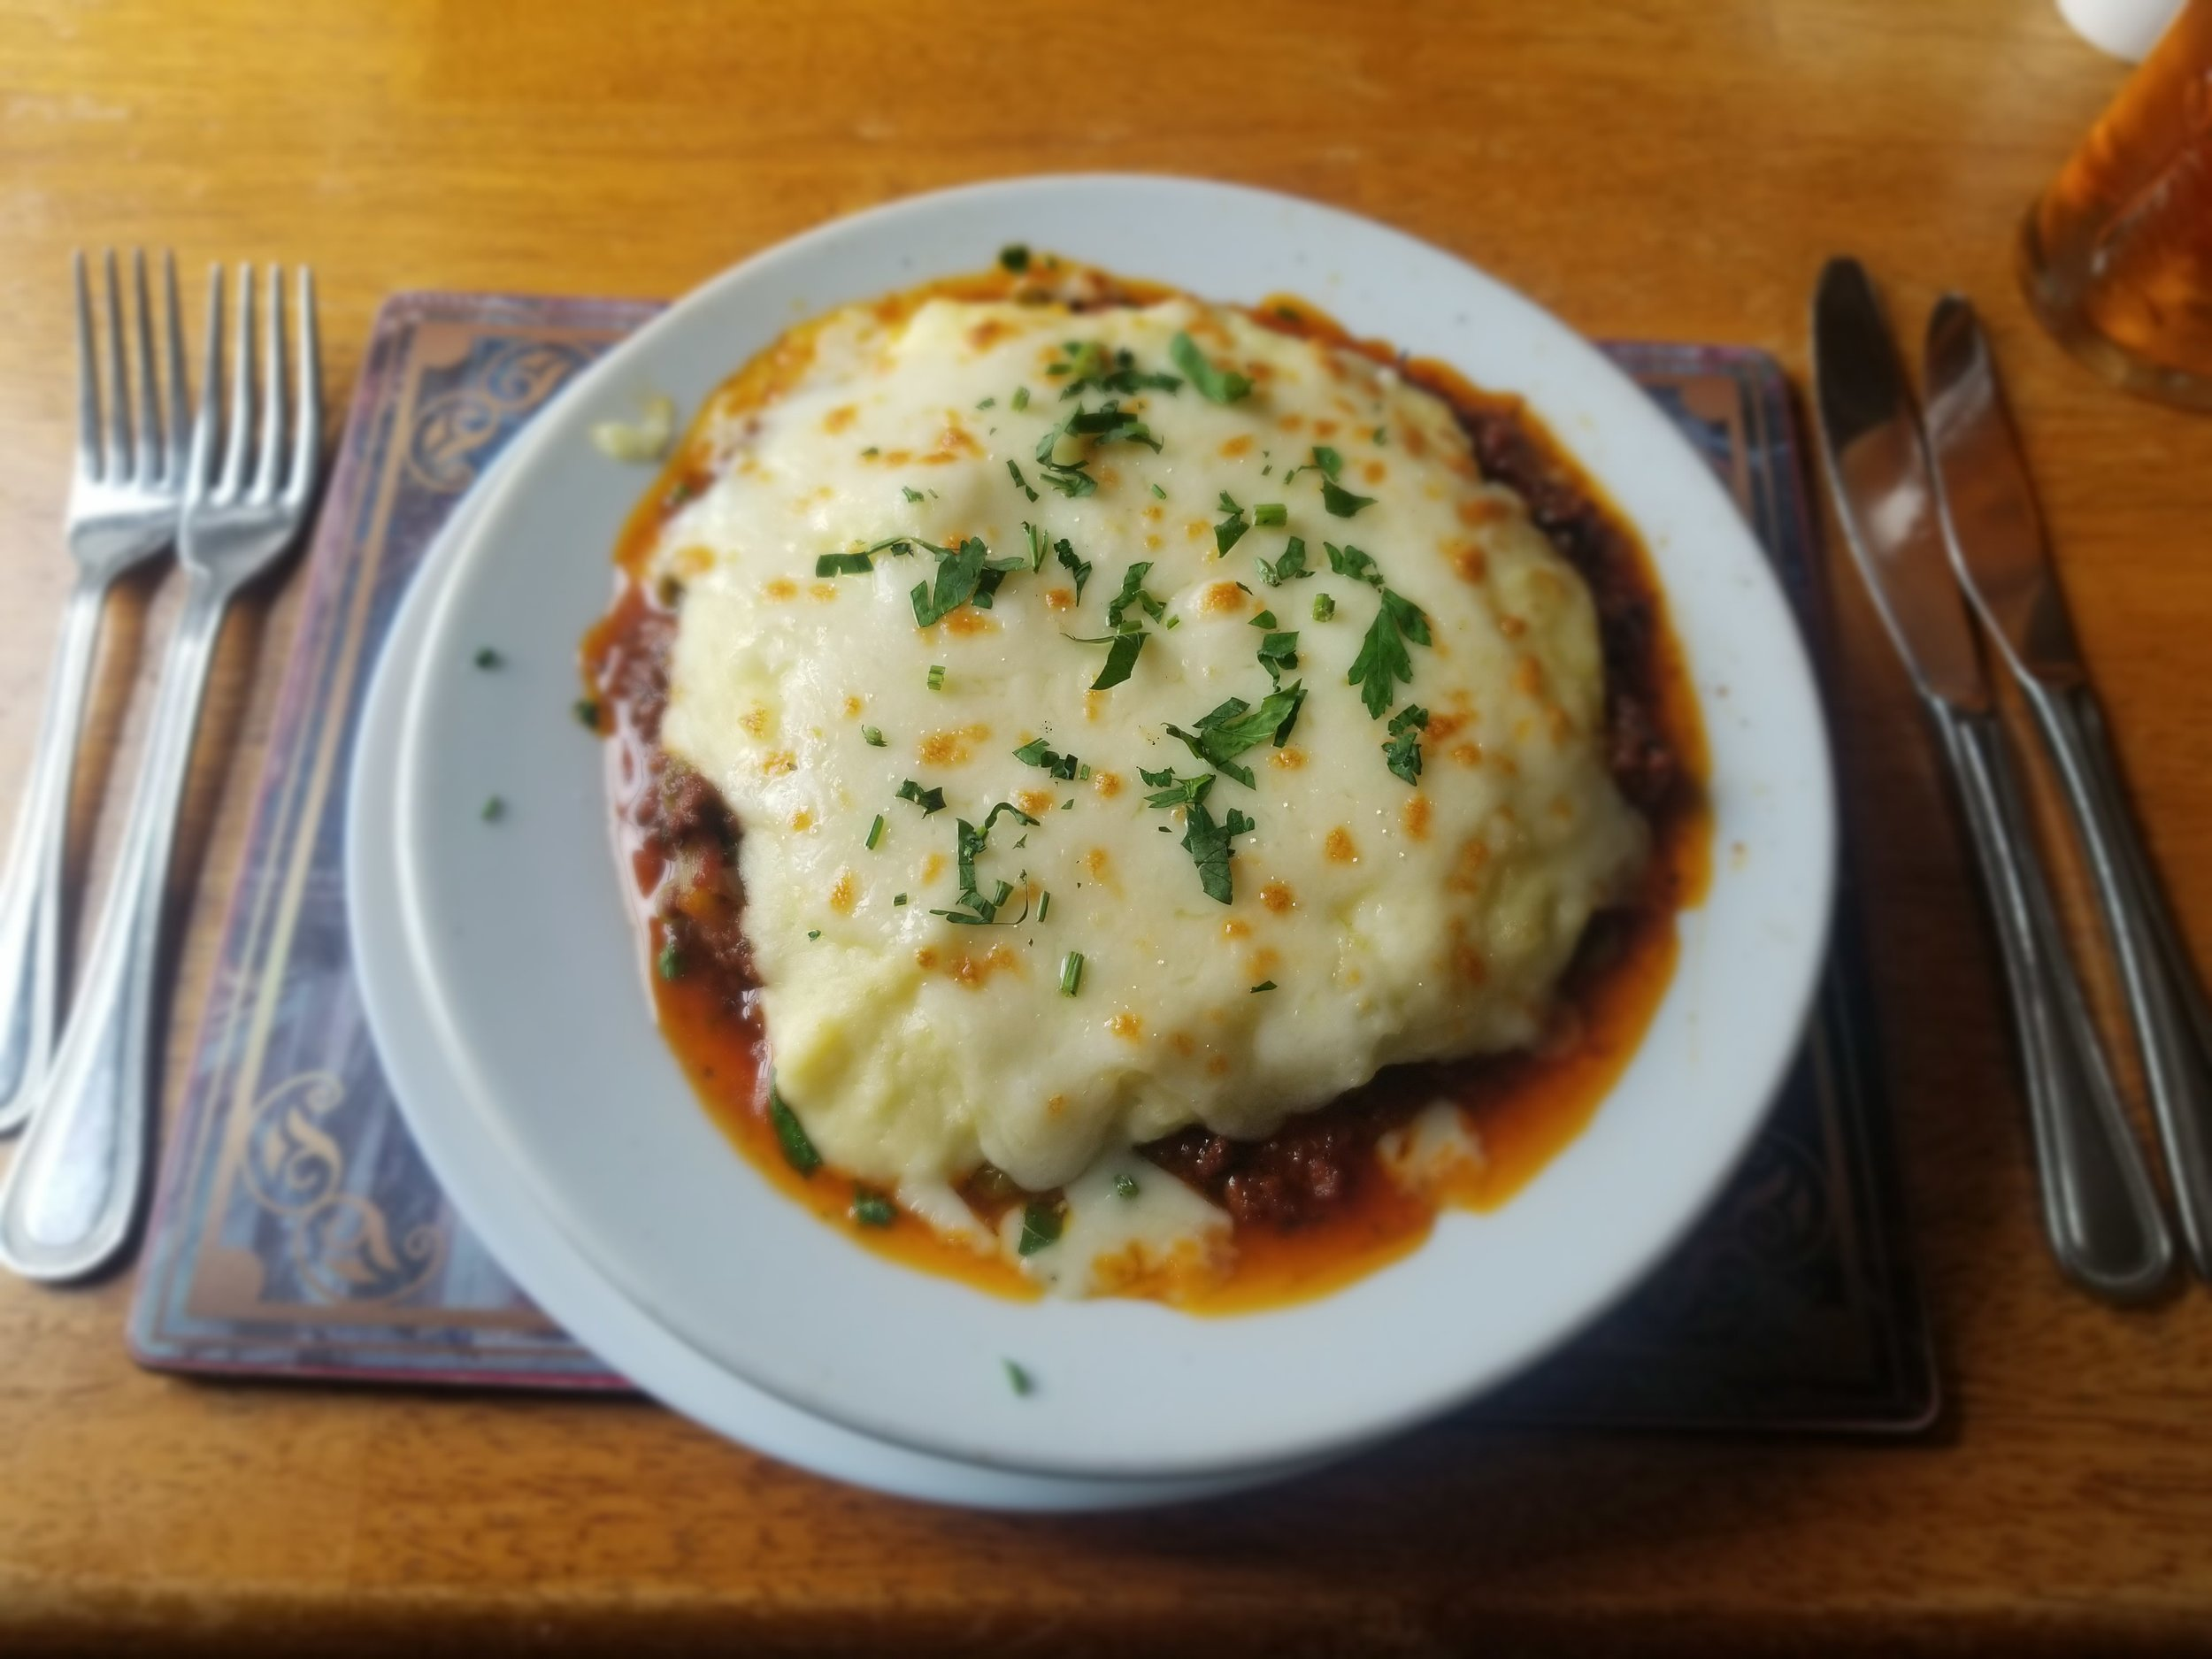 As a Sheppard's pie fanatic, finding a great meal of it was a must on my list. Photo credit: Morrill, 2019